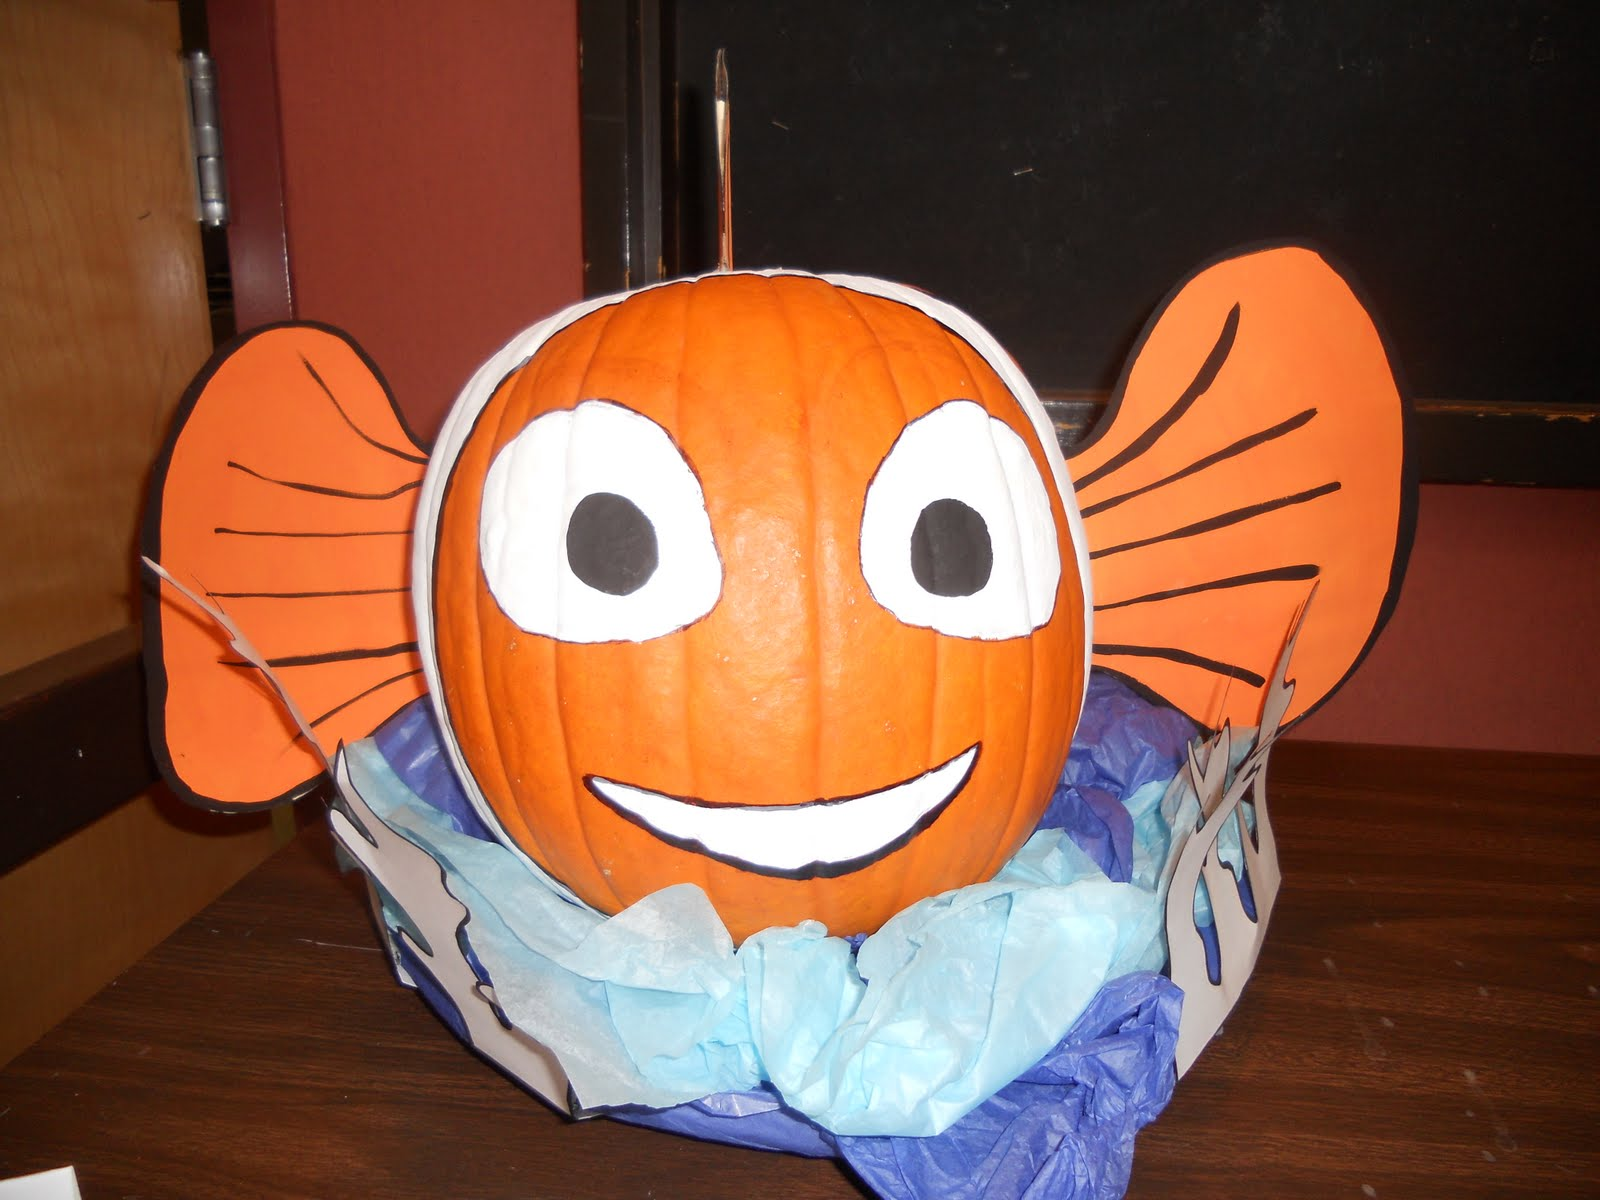 Razle dazle events from the archive clown fish pumpkin for Clown pumpkin painting